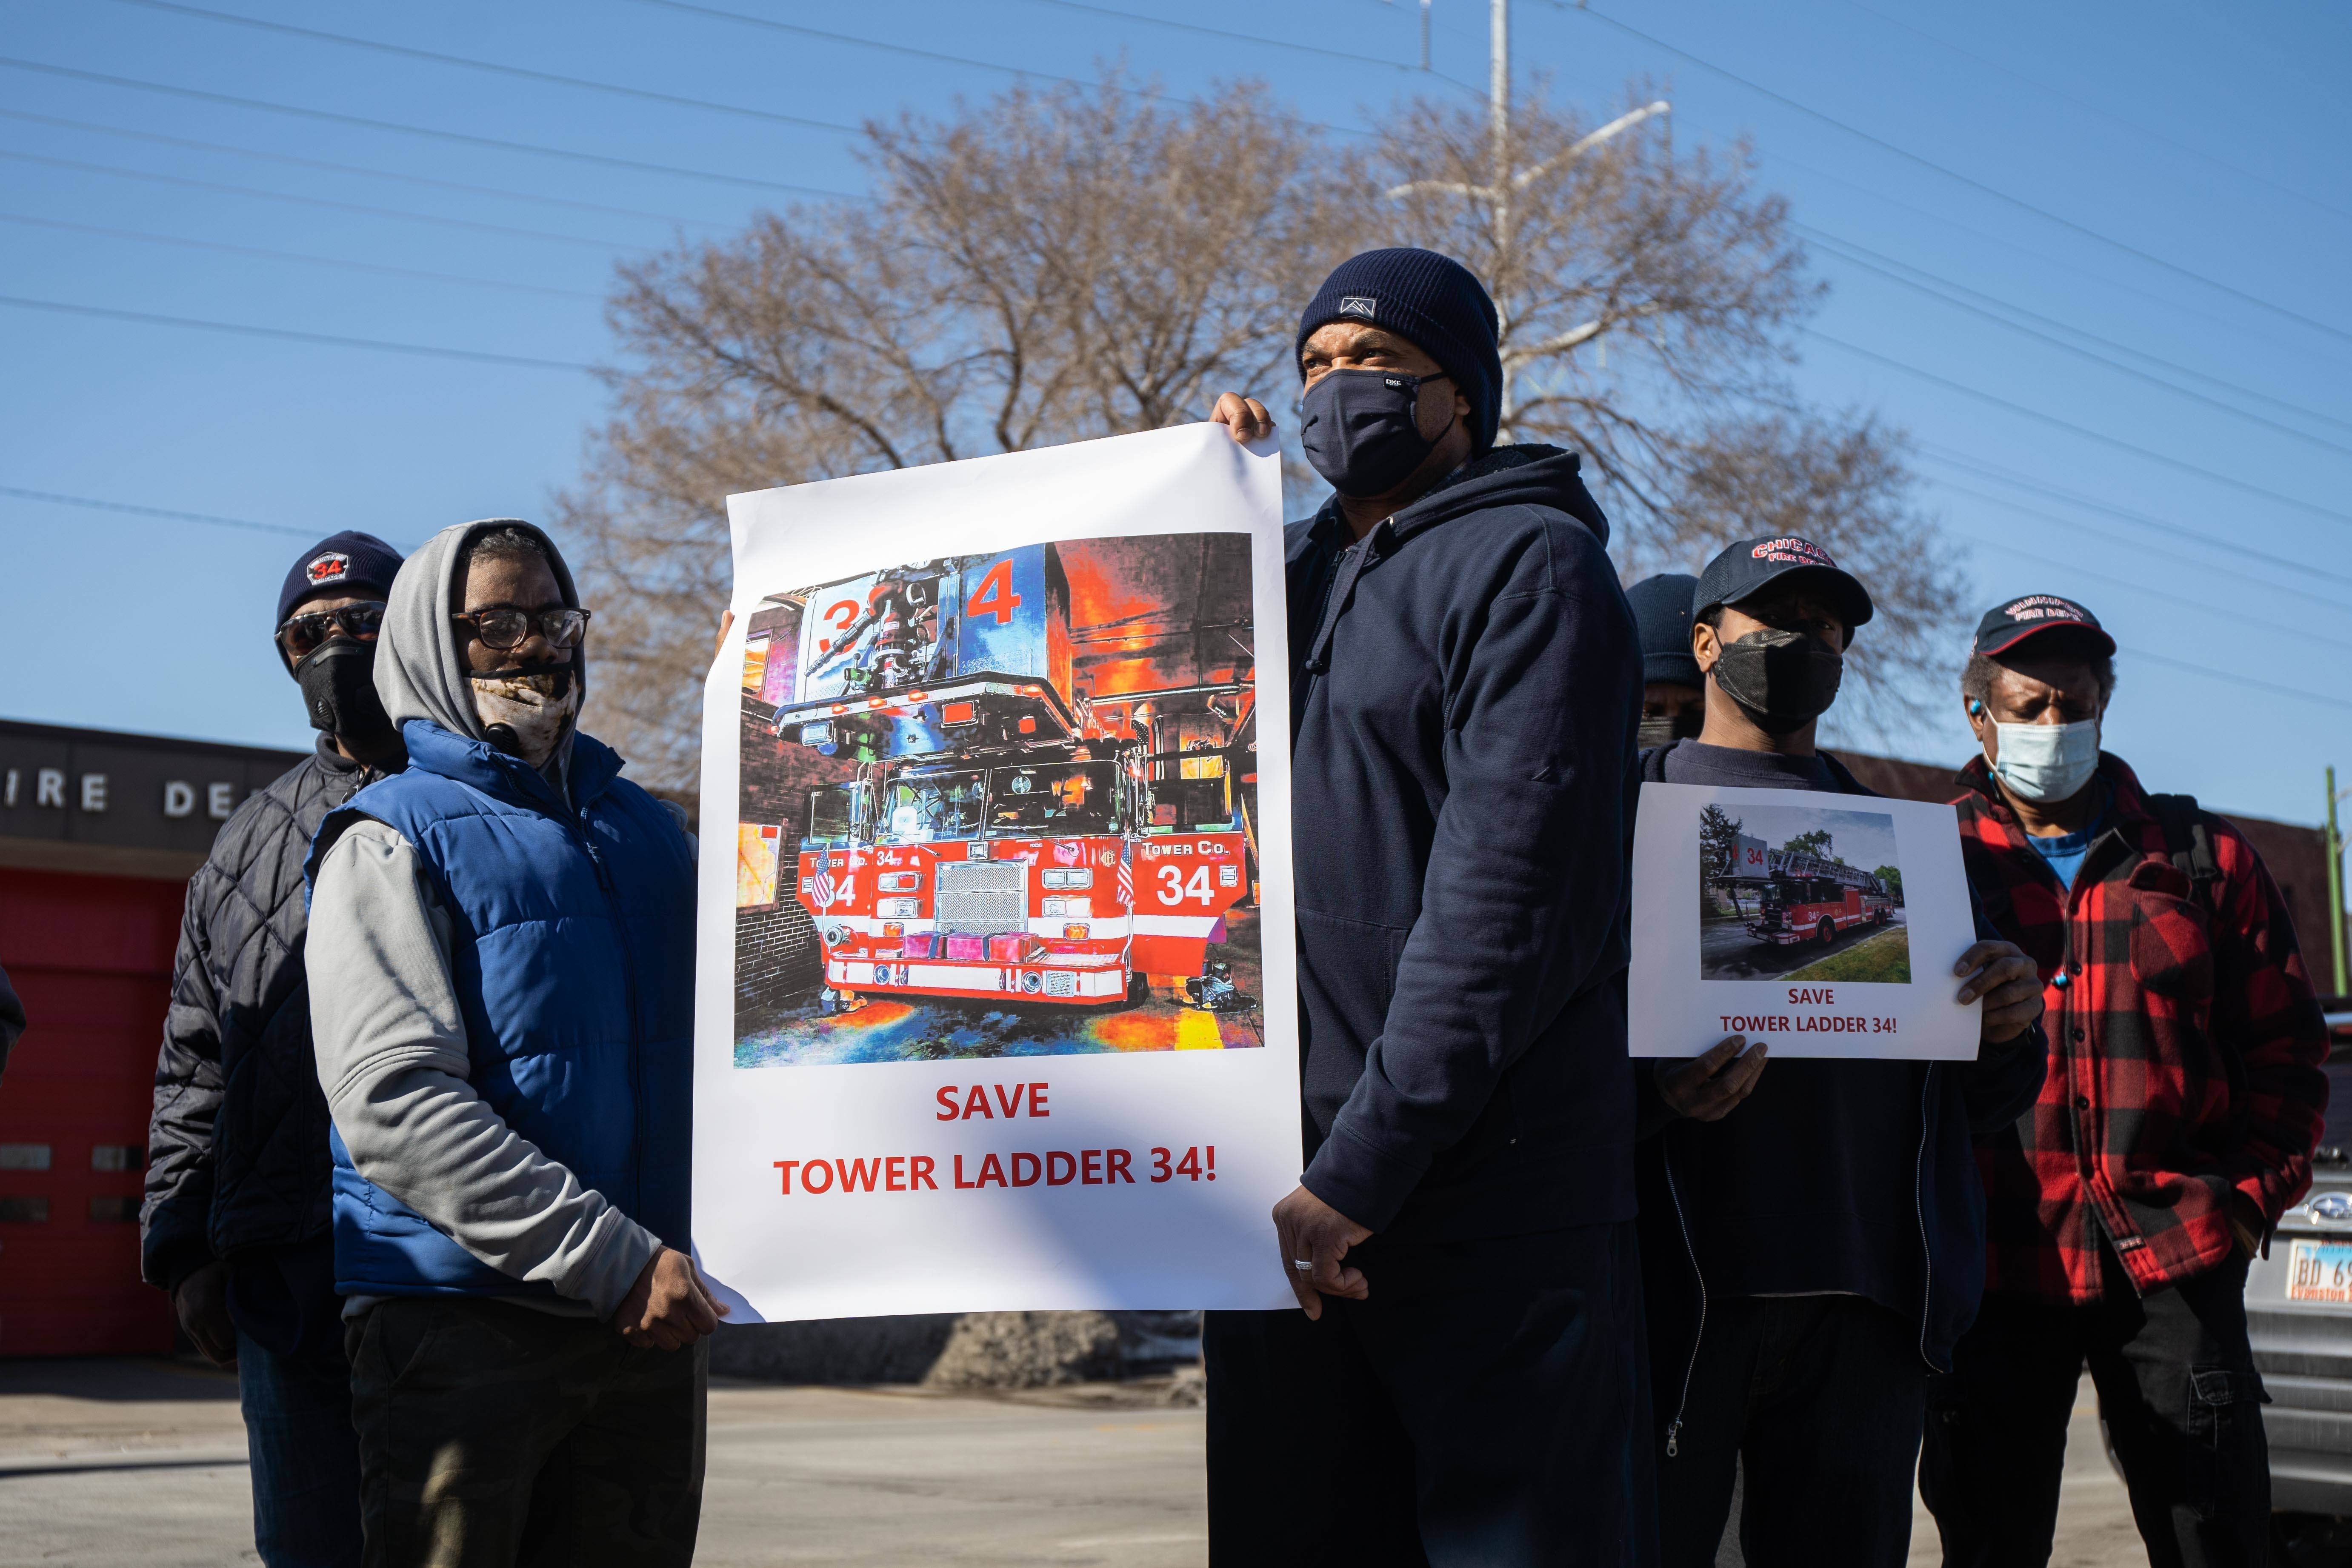 Current and former Chicago firefighters, as well as other community residents, on Thursday protest the planned removal of Tower Ladder 34 from the firehouse at 7982 S. Chicago Ave.